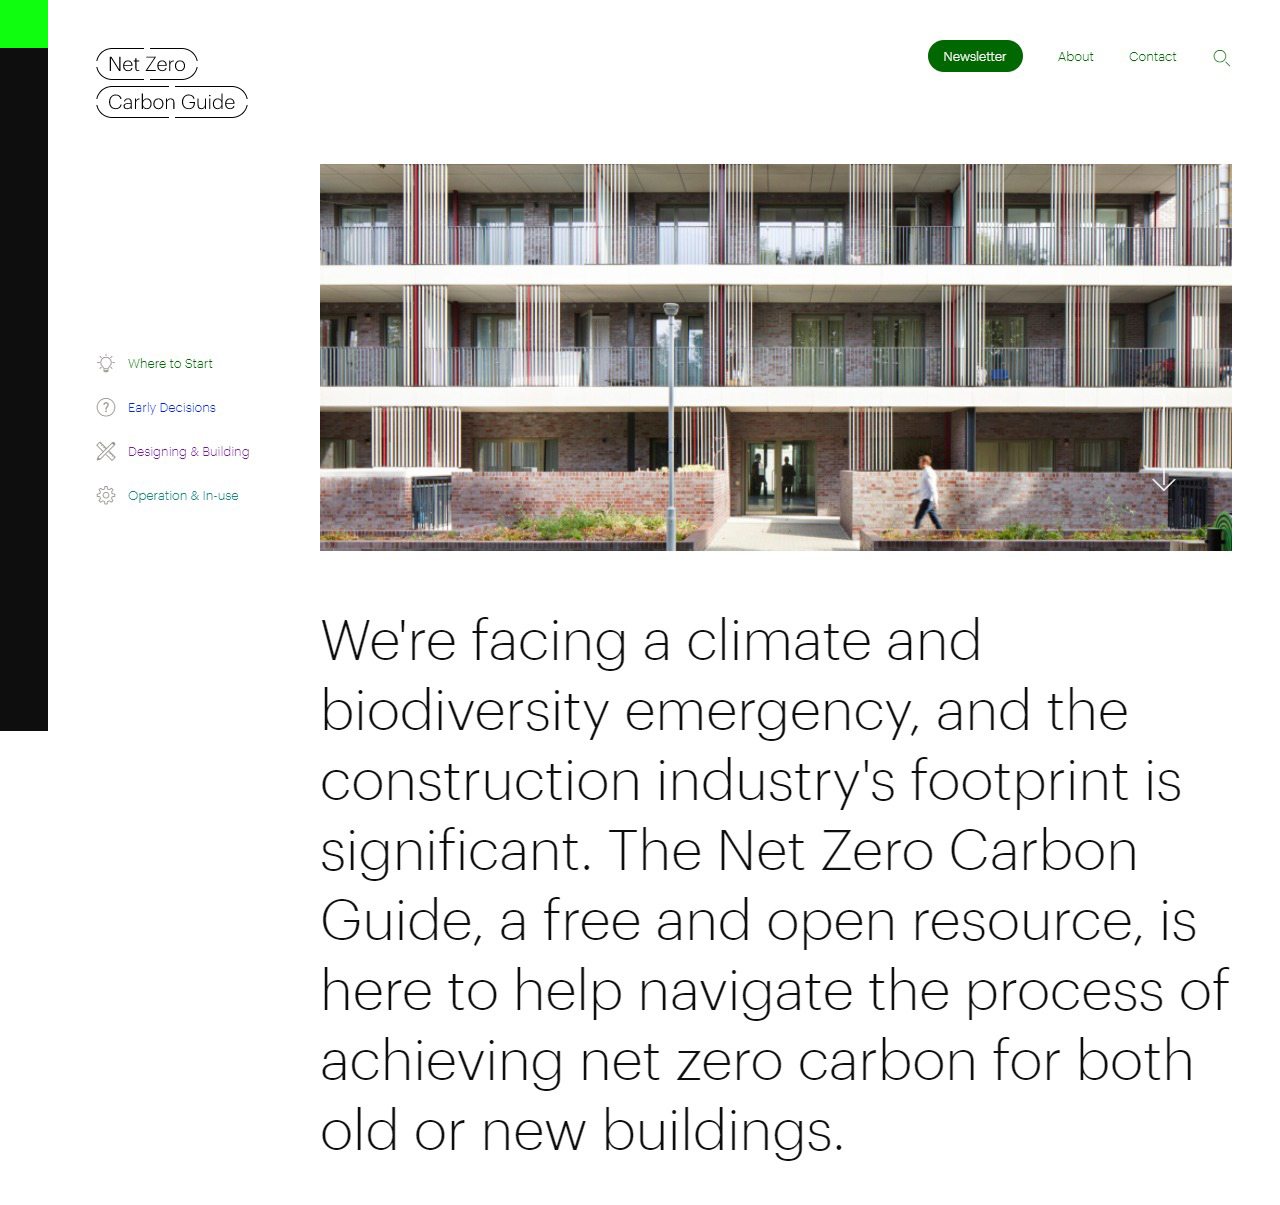 Net Zero Carbon Guide